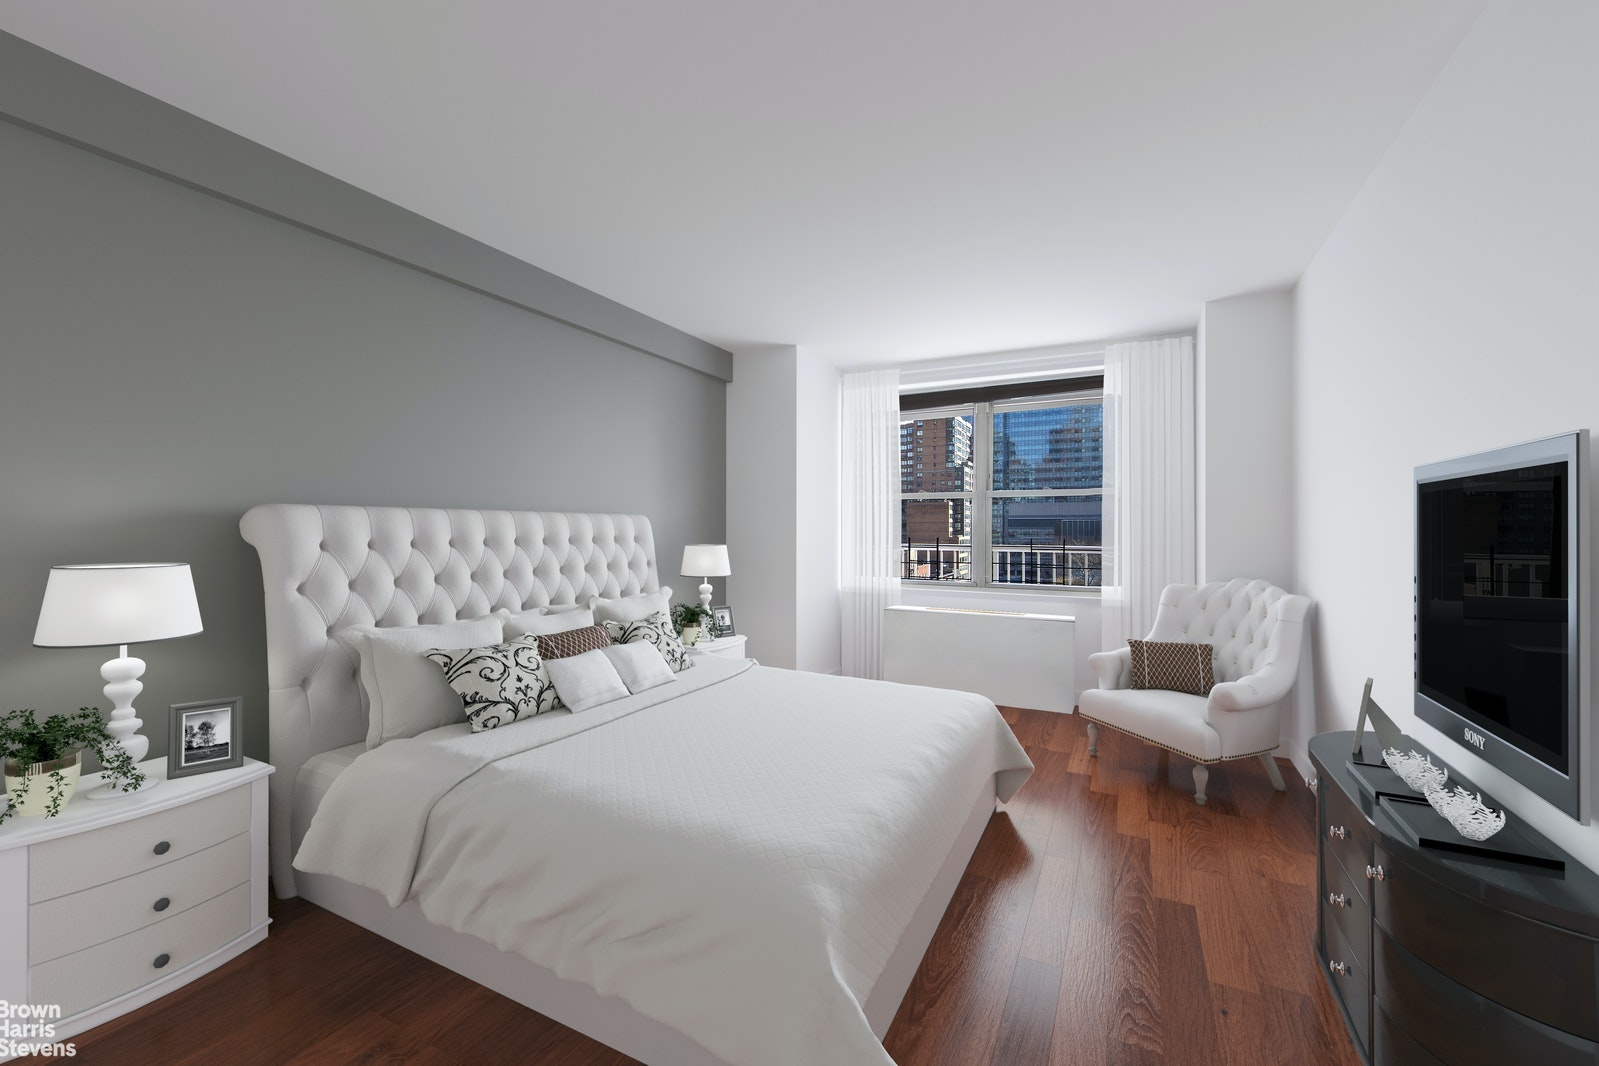 251 East 32nd Street 9bc, Murray Hill Kips Bay, NYC, 10016, $1,599,000, Property For Sale, Halstead Real Estate, Photo 4